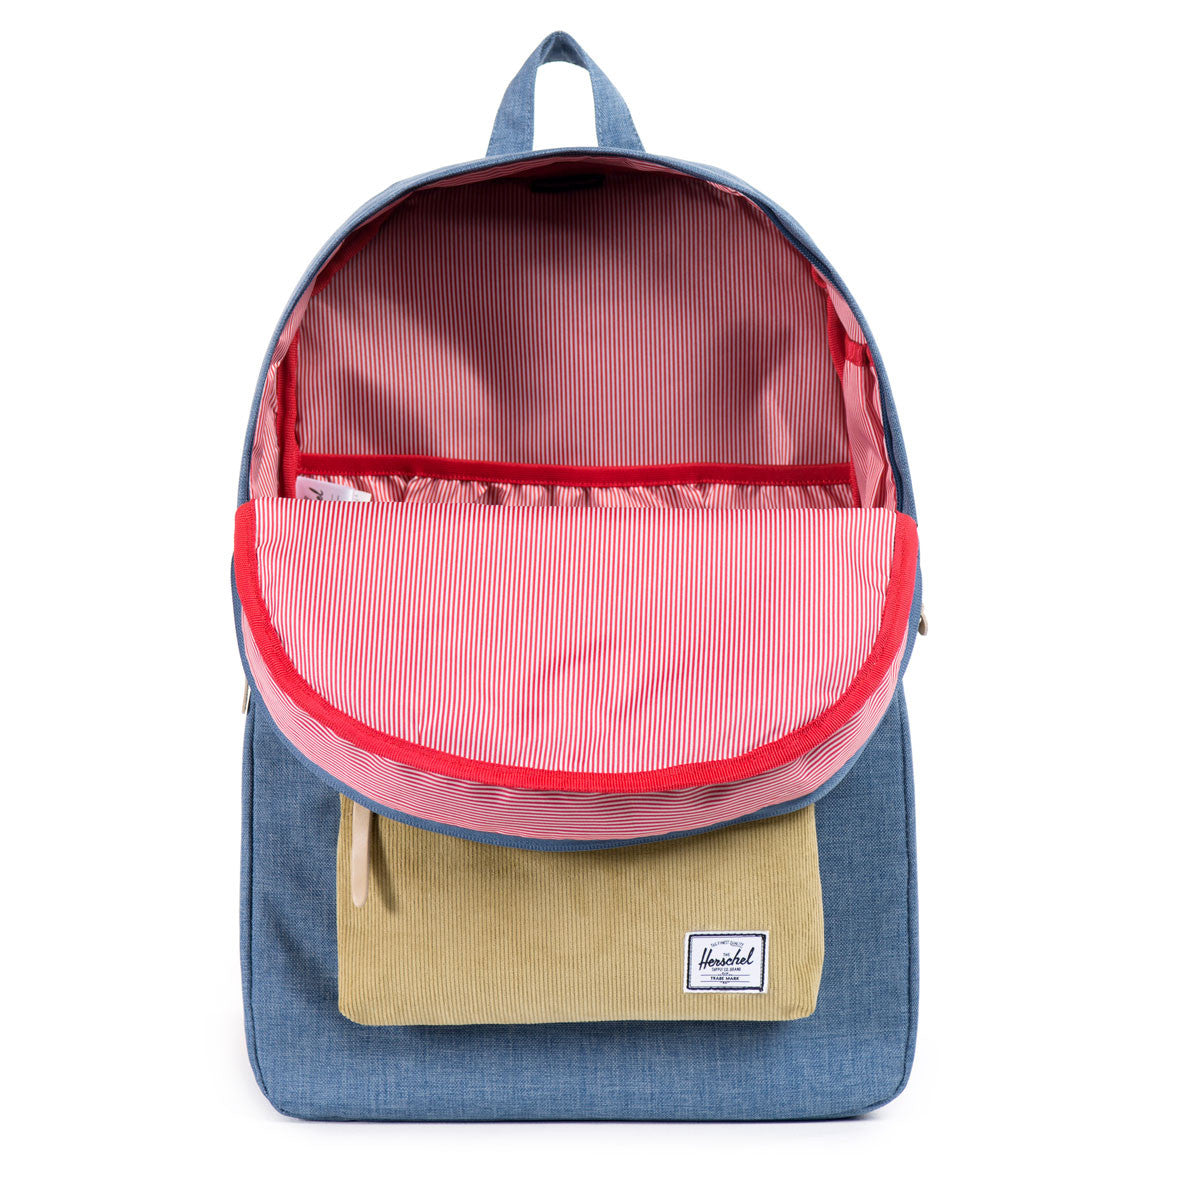 Herschel Supply Co.: Heritage Backpack - Navy / Straw Crosshatch (Ranch) open